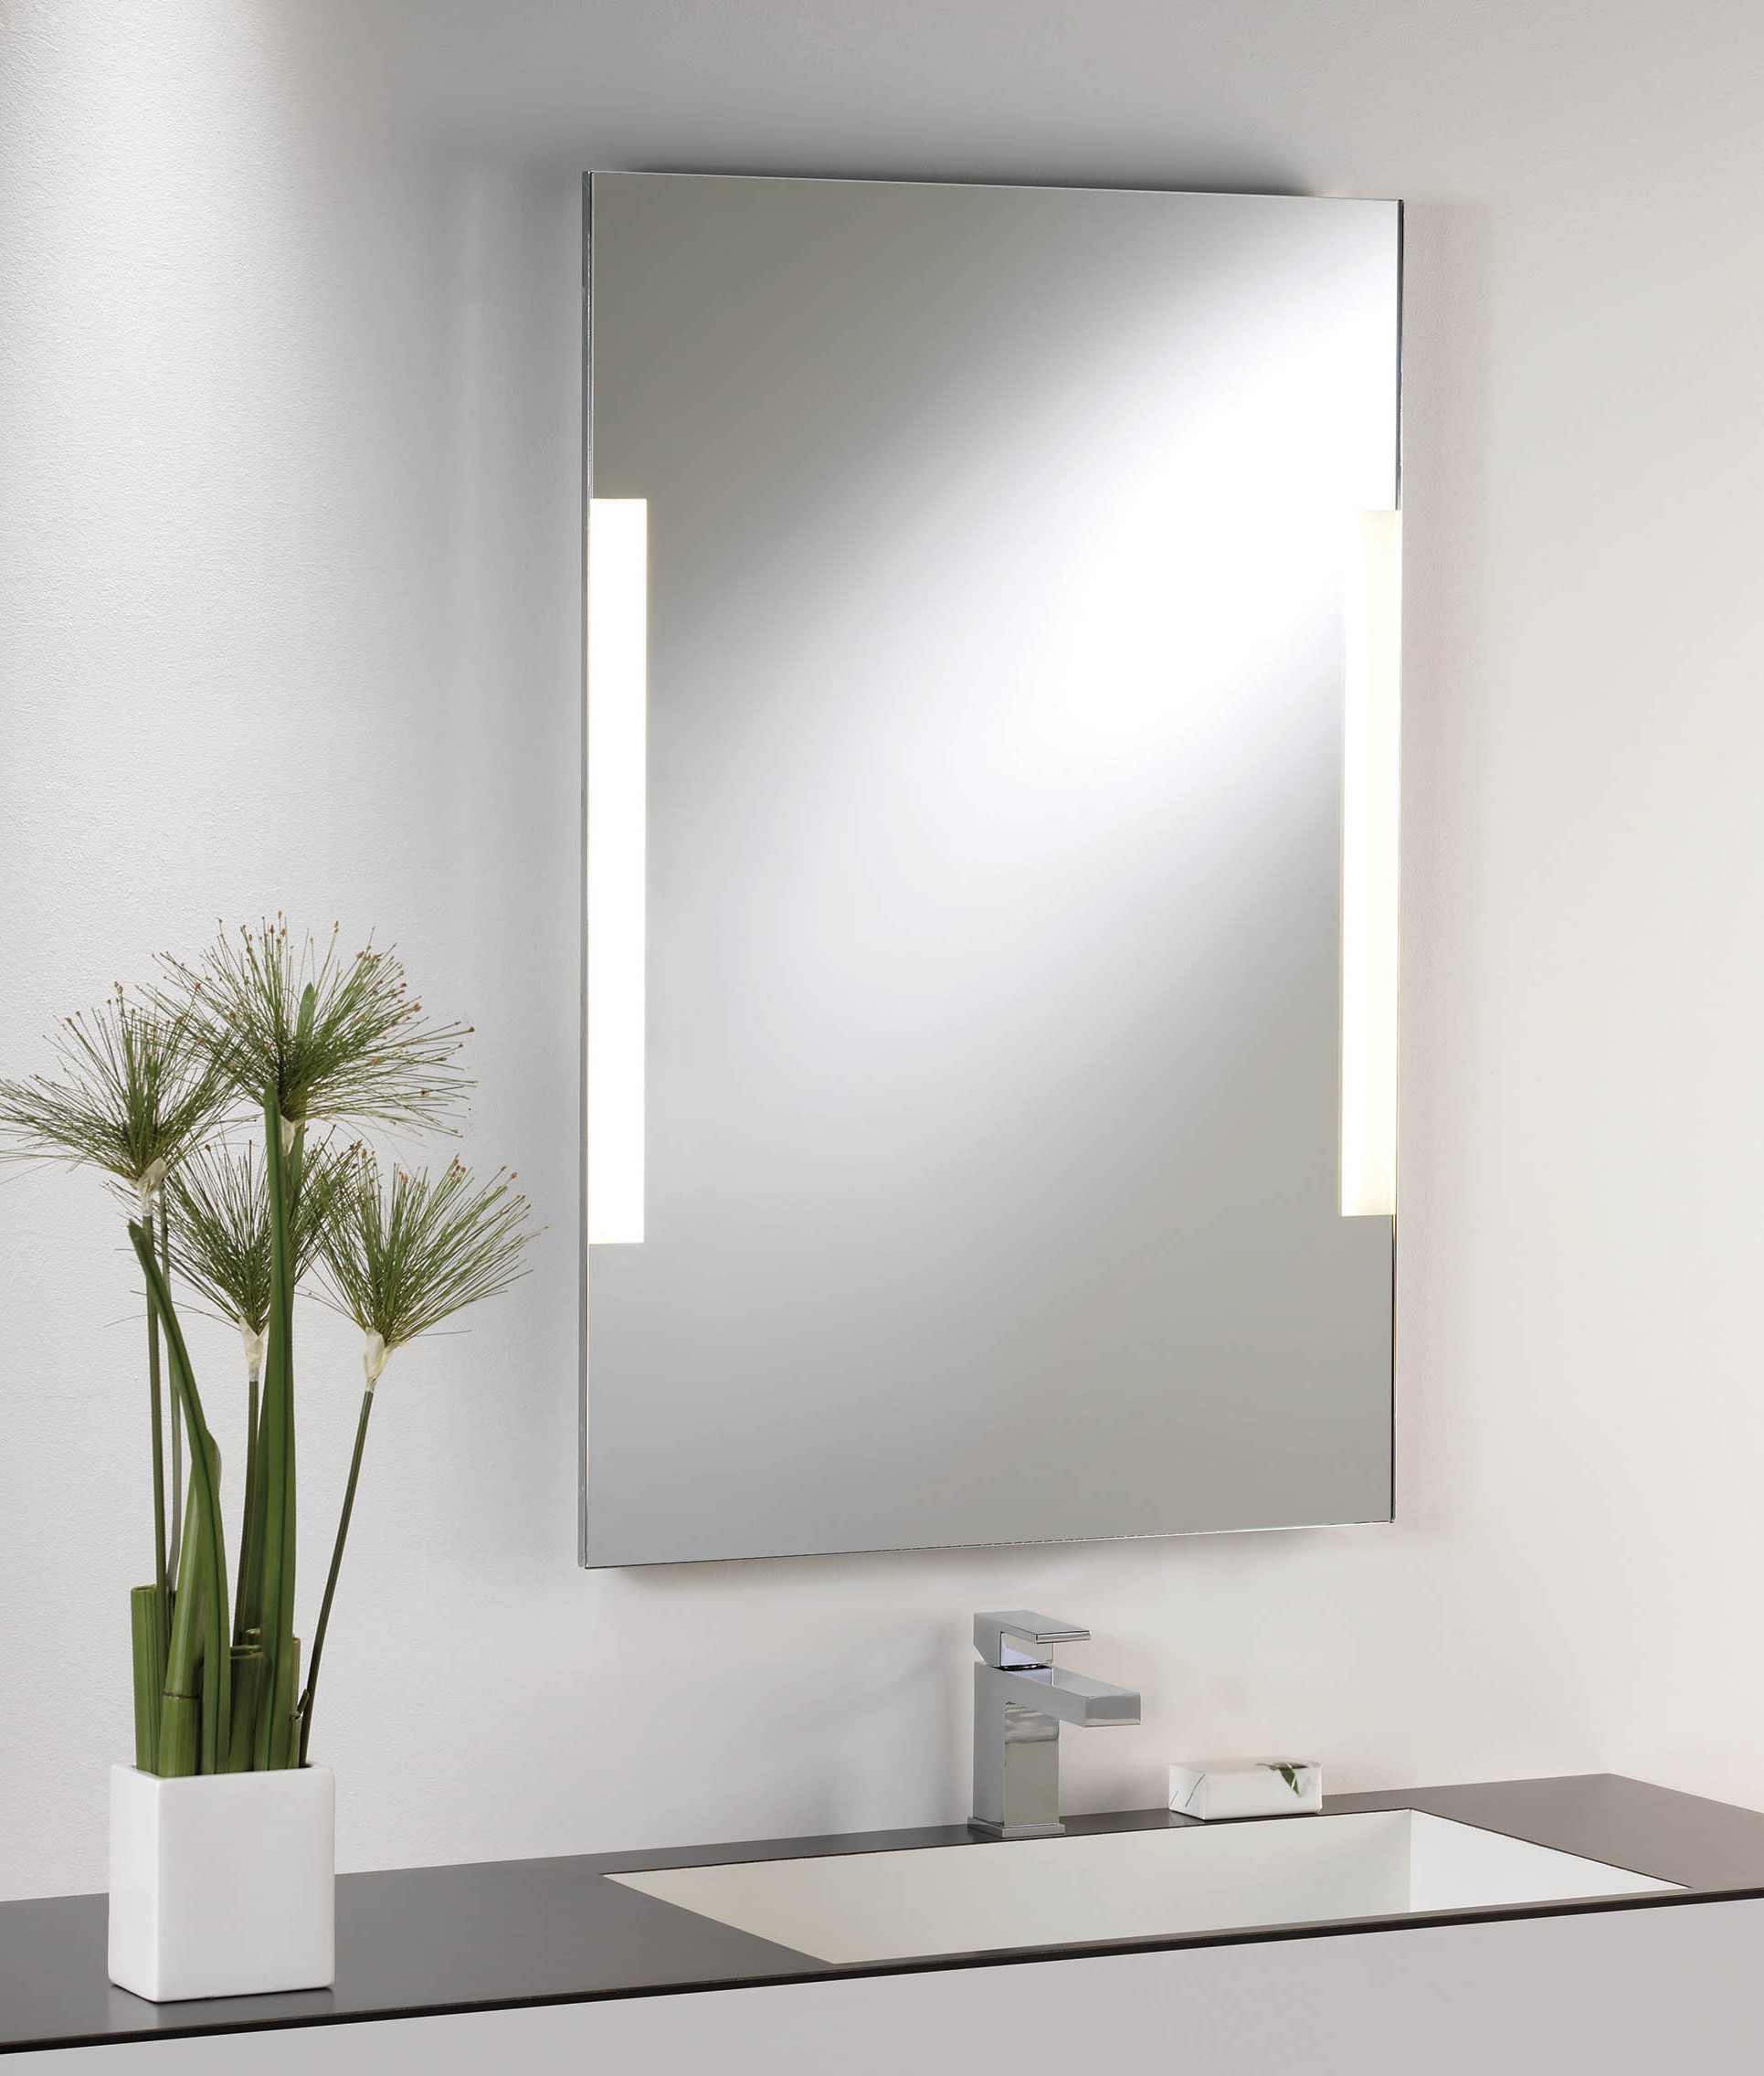 Shallow profile illuminated mirror in 3 sizes for Mirror 900 x 600